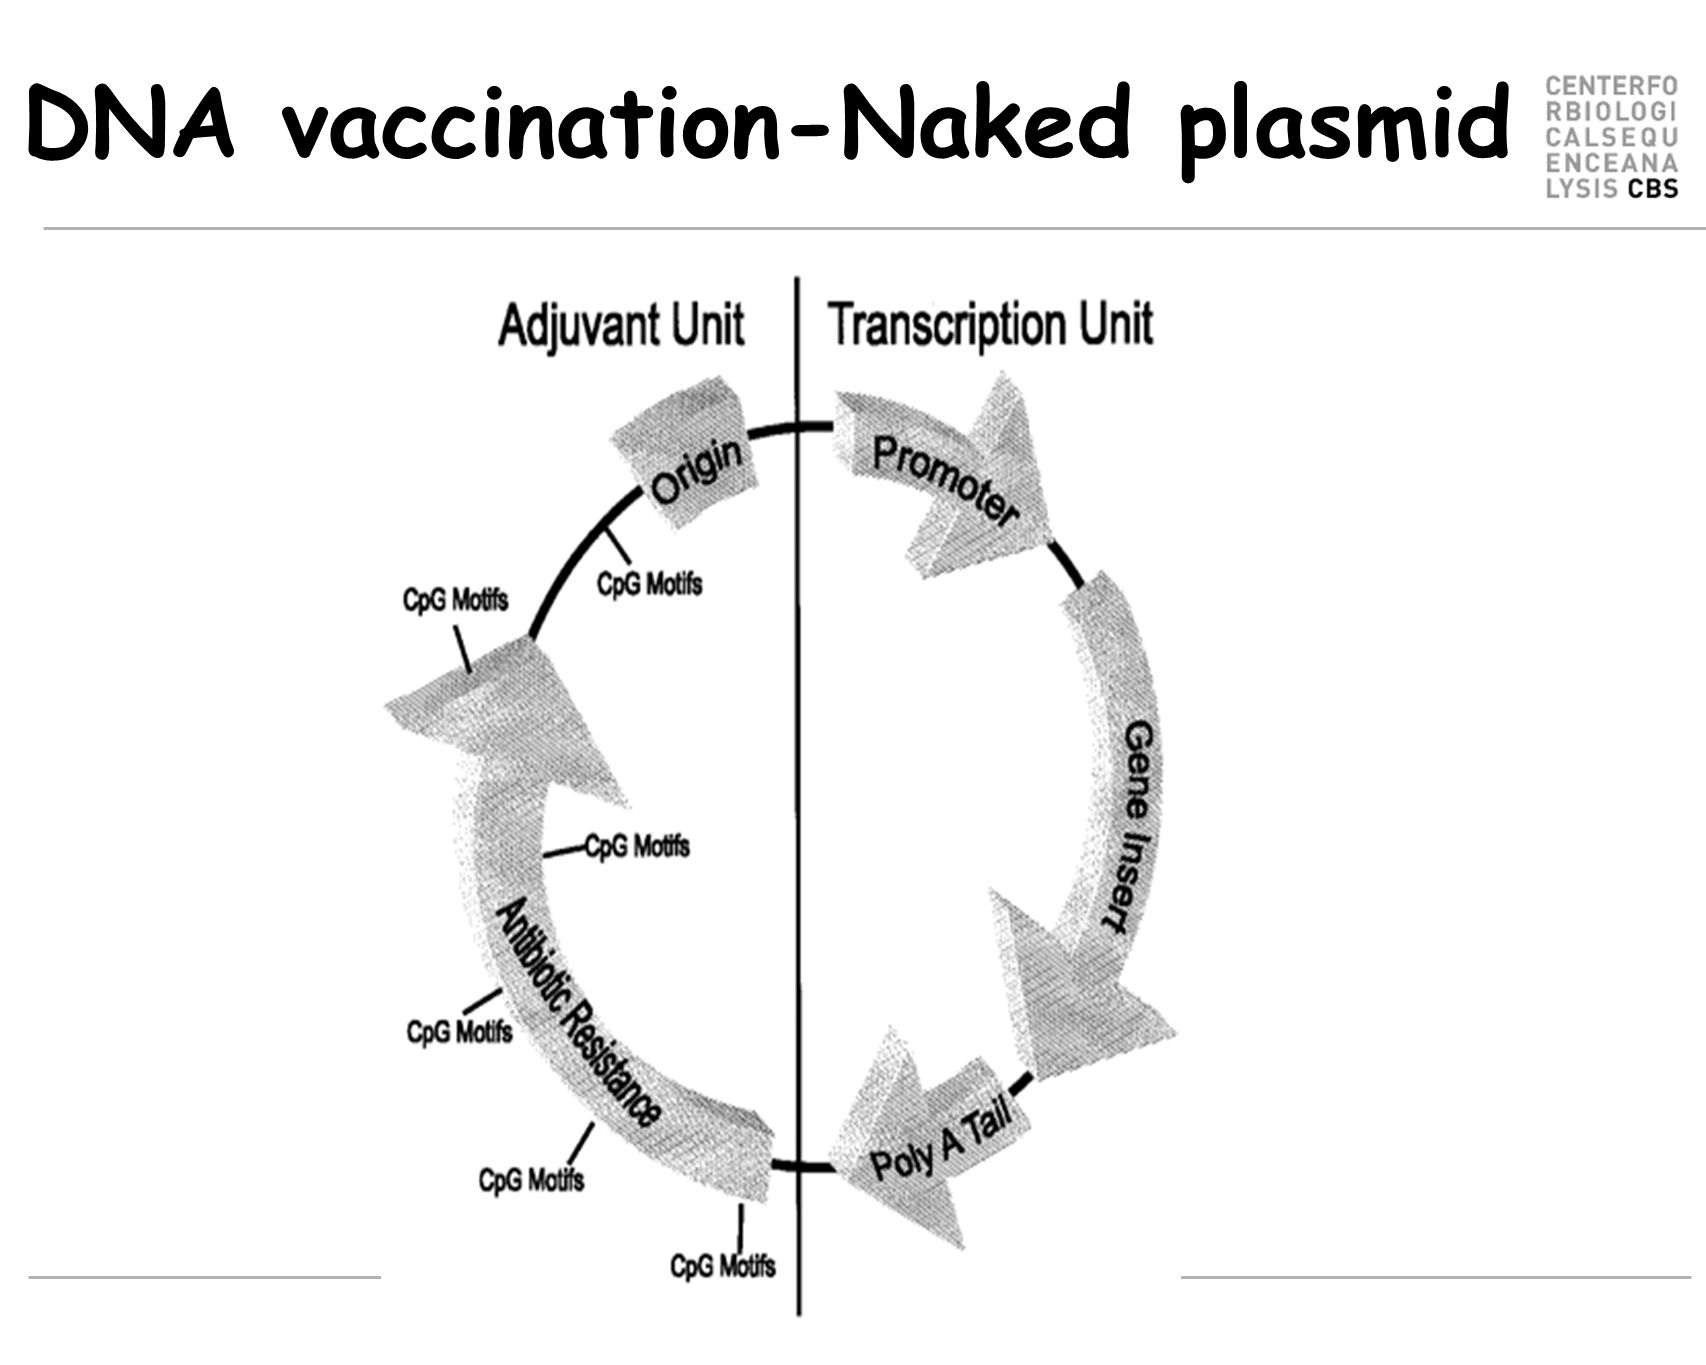 DNA vaccination-Naked plasmid